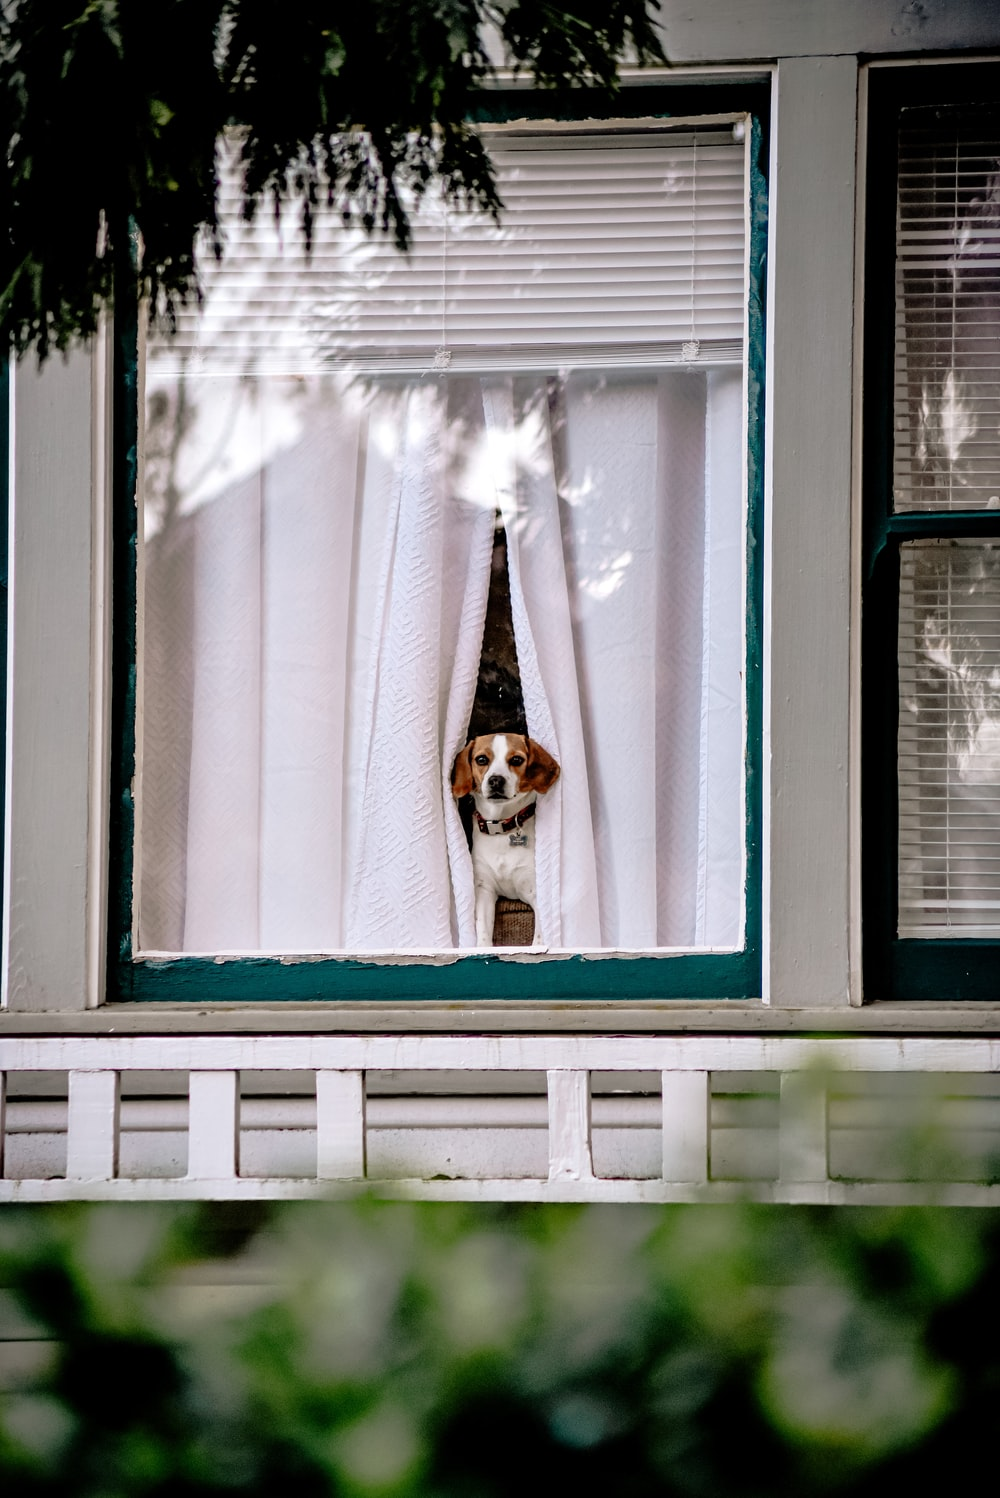 white and brown short coated dog on window